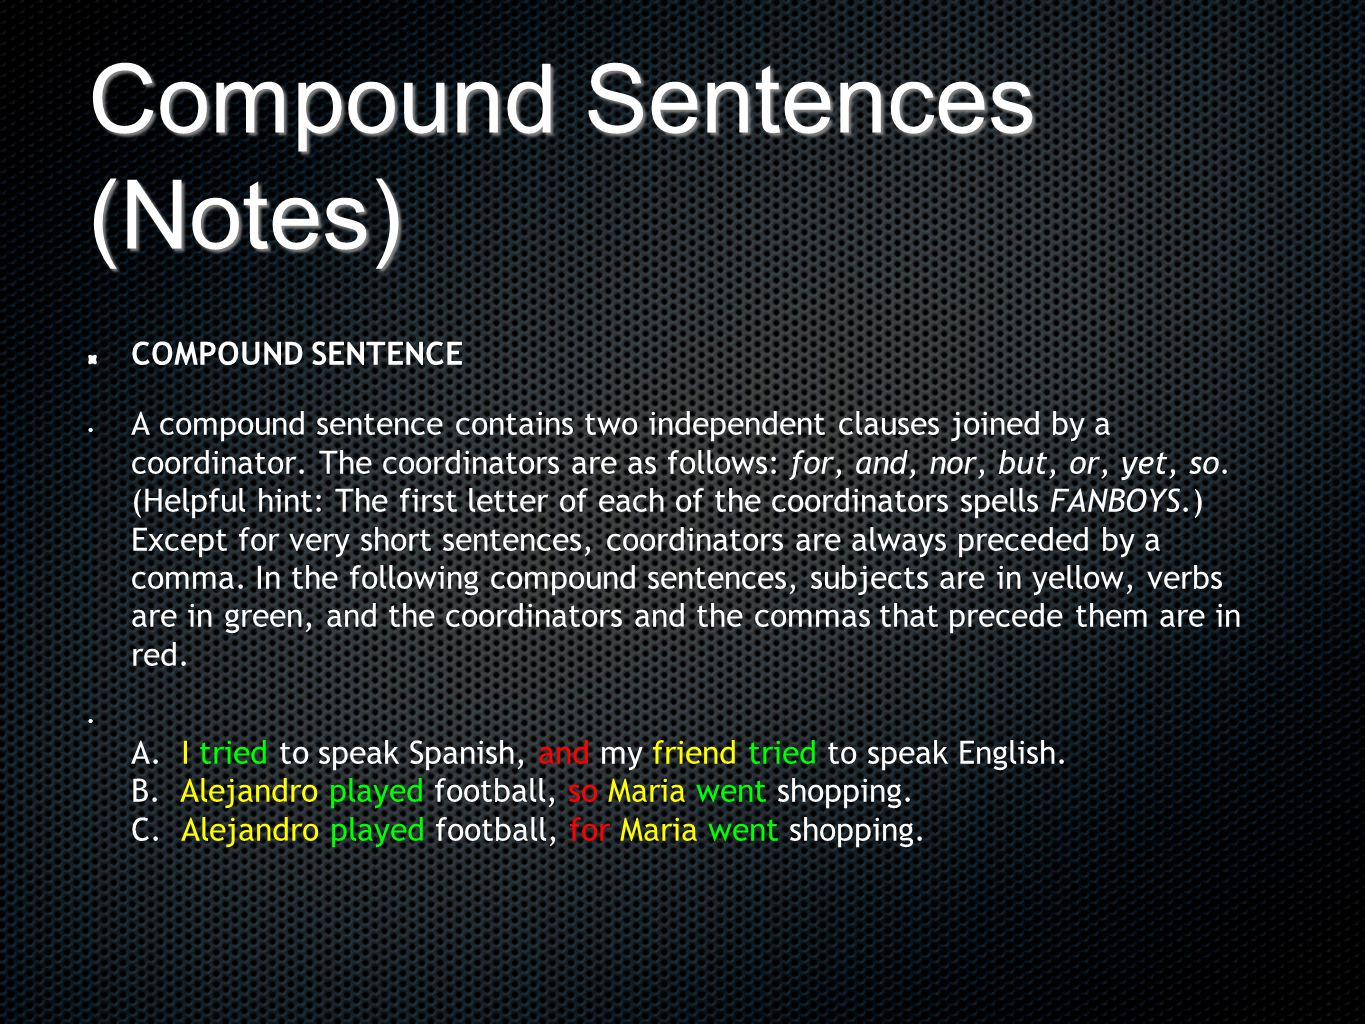 Compound Sentences (Notes)